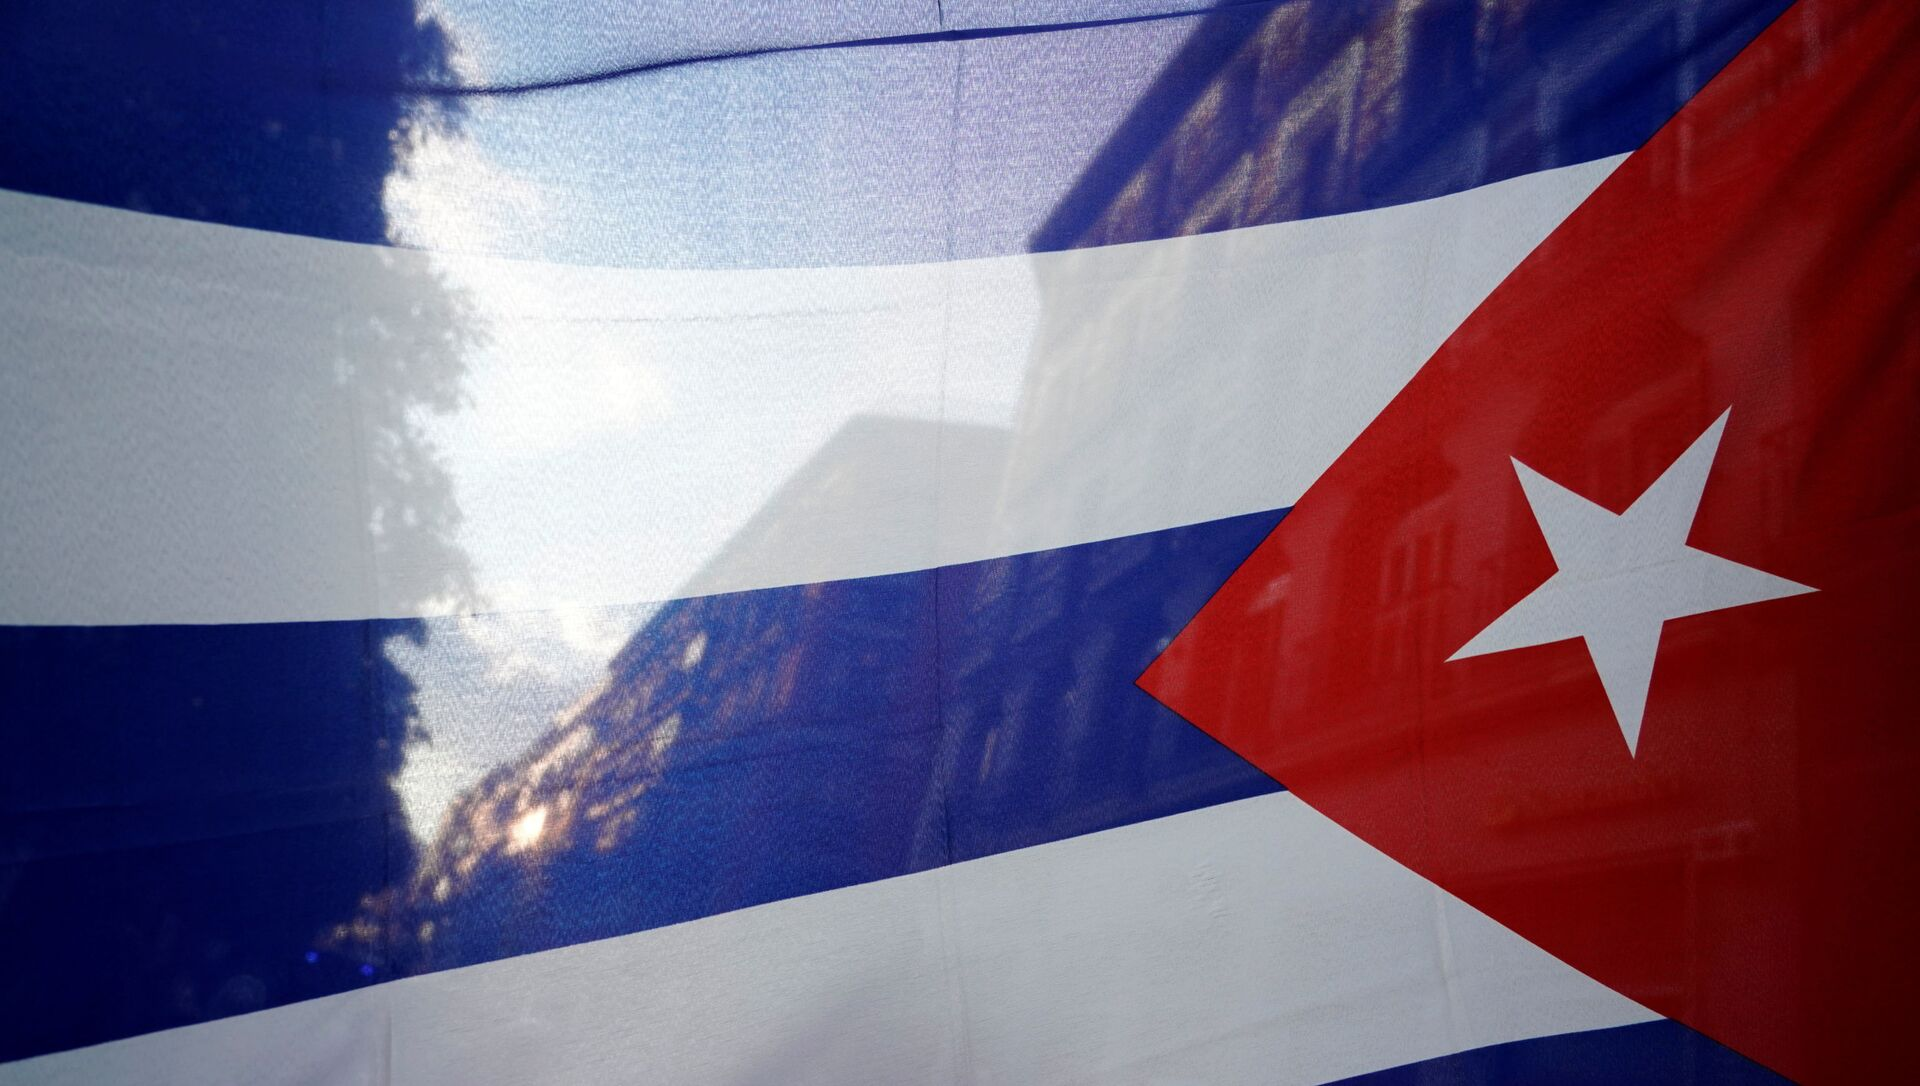 The silhouette of the city is seen through a Cuban flag during a protest against the  U.S. economic embargo in Cuba - Sputnik International, 1920, 27.07.2021